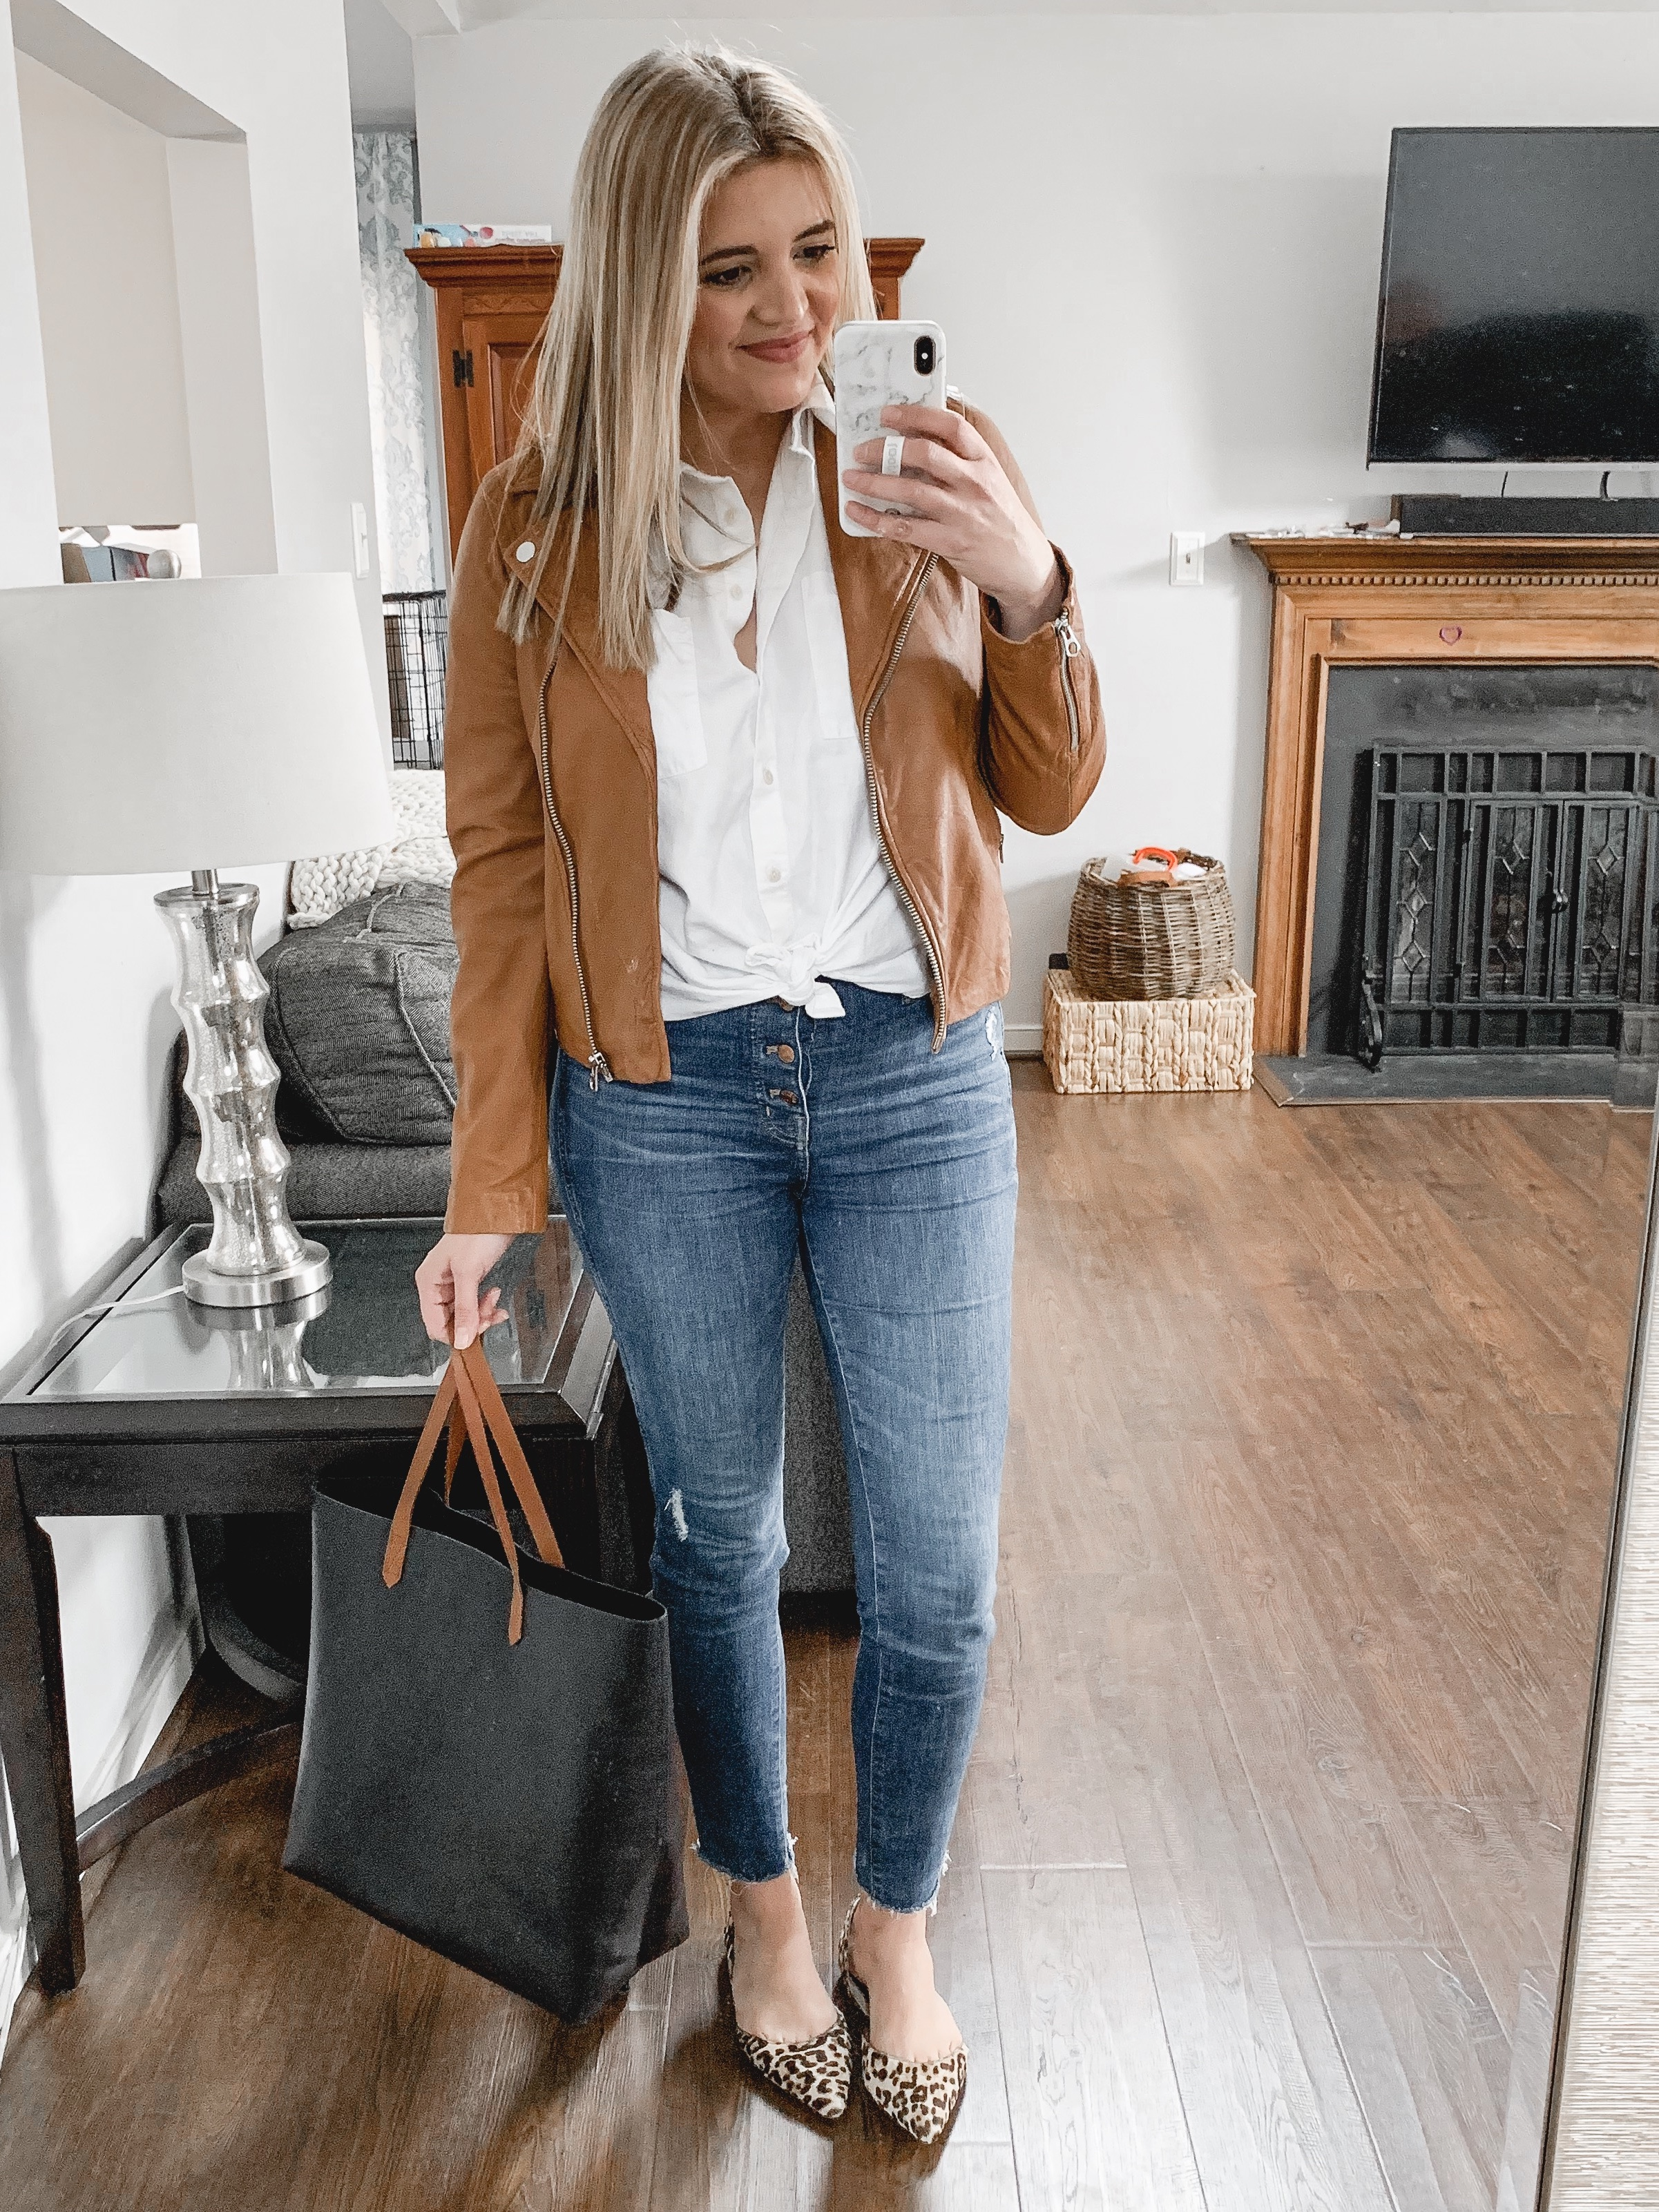 Affordable style blogger Lauren Dix shares her top Shopbop sale picks, including her favorite Madewell outfit pieces!